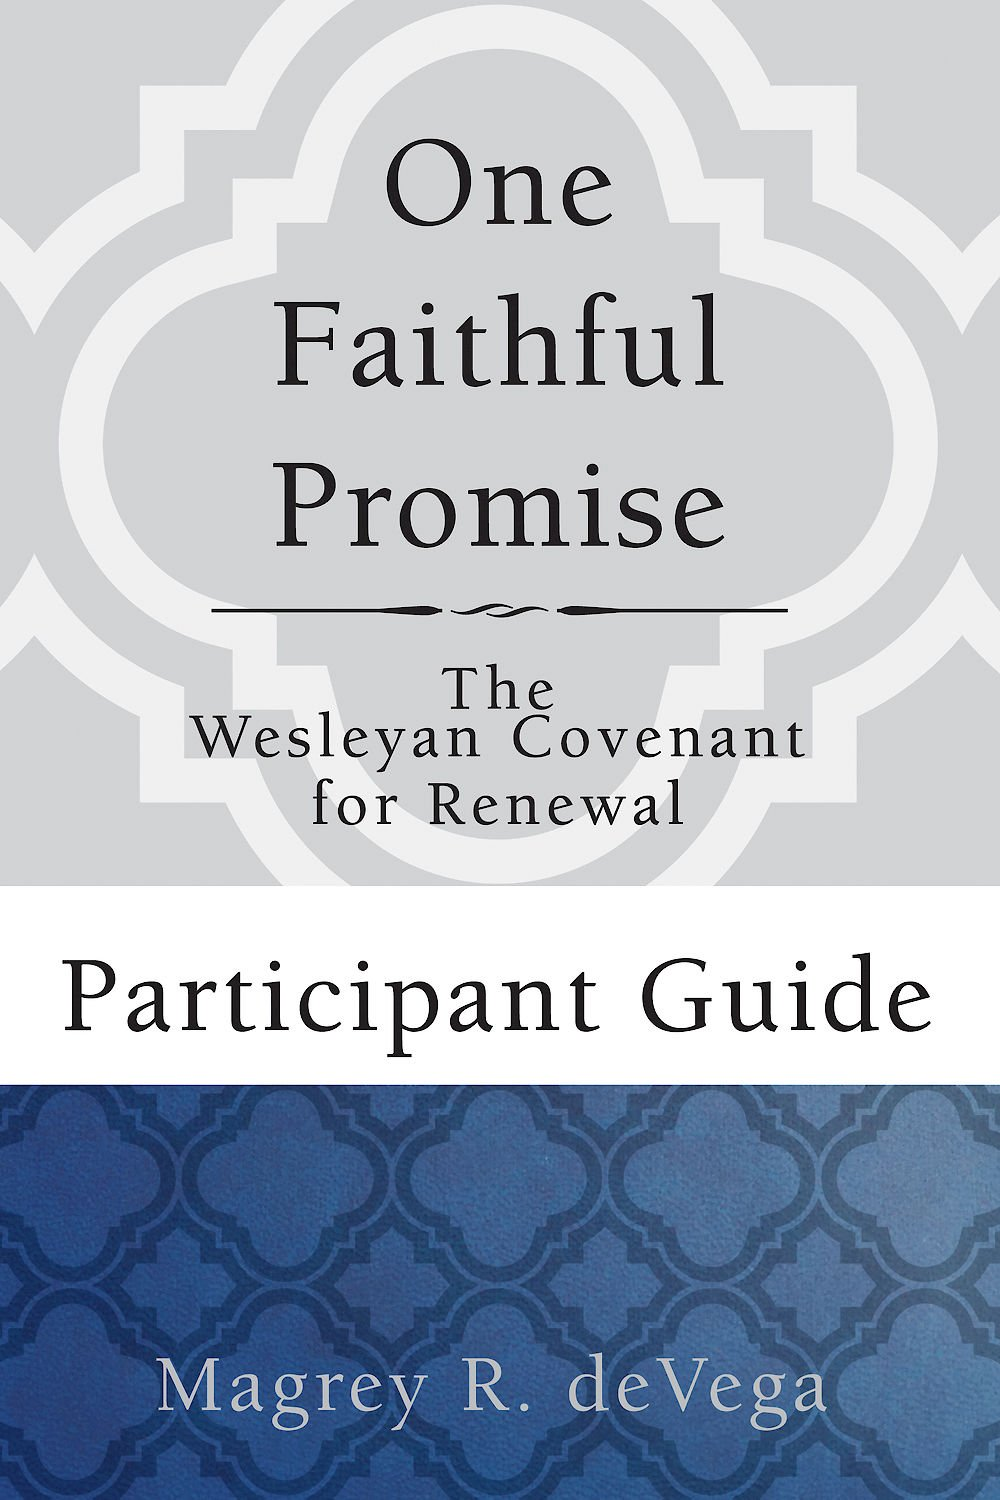 One Faithful Promise: Participant Guide: The Wesleyan Covenant for Renewal (Wesley Discipleship Path Series) ebook